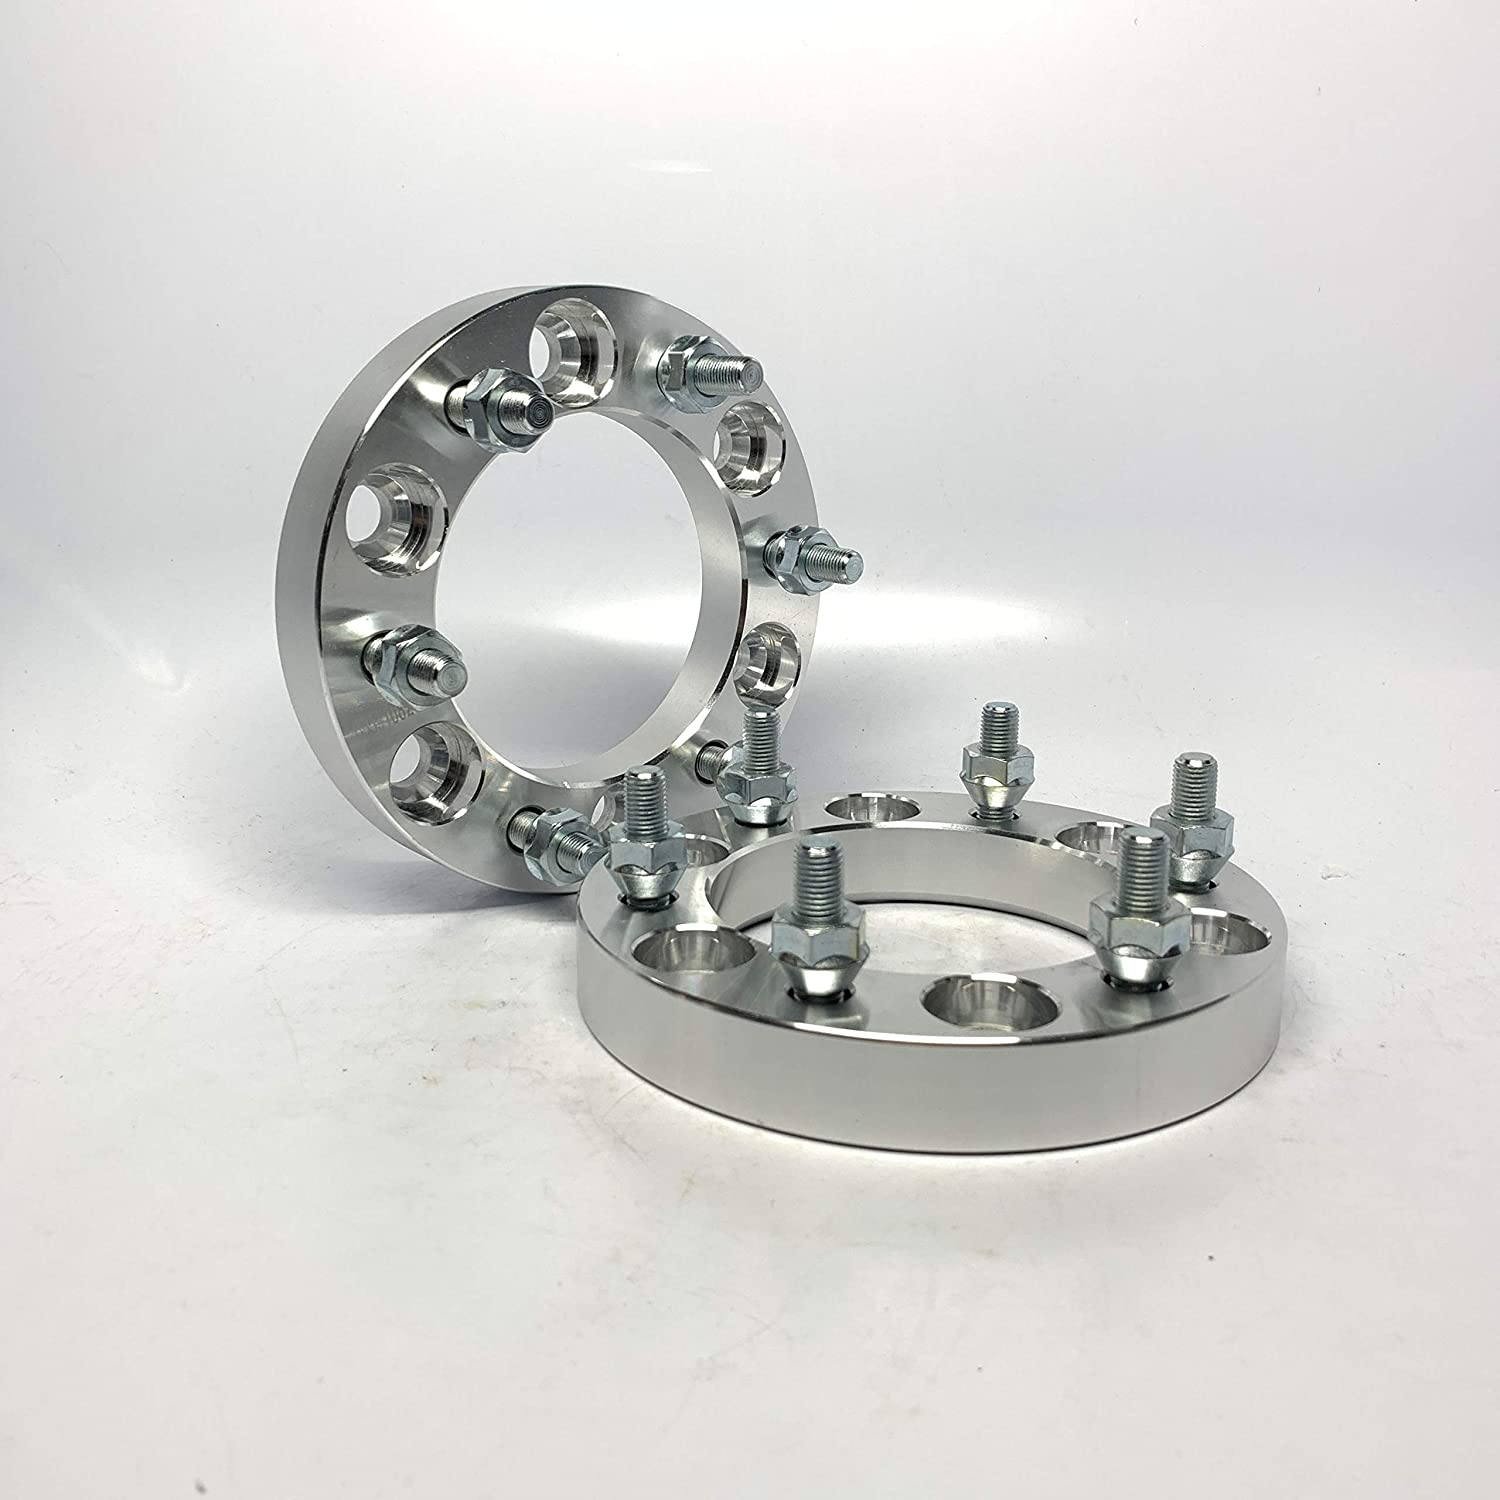 Customadeonly 2 Pieces 1 25mm Wheel Spacers Bolt Pattern 6x5.5 to 6x5.5 6x139.7 Center Bore 108mm Thread Pitch 7/16 Studs